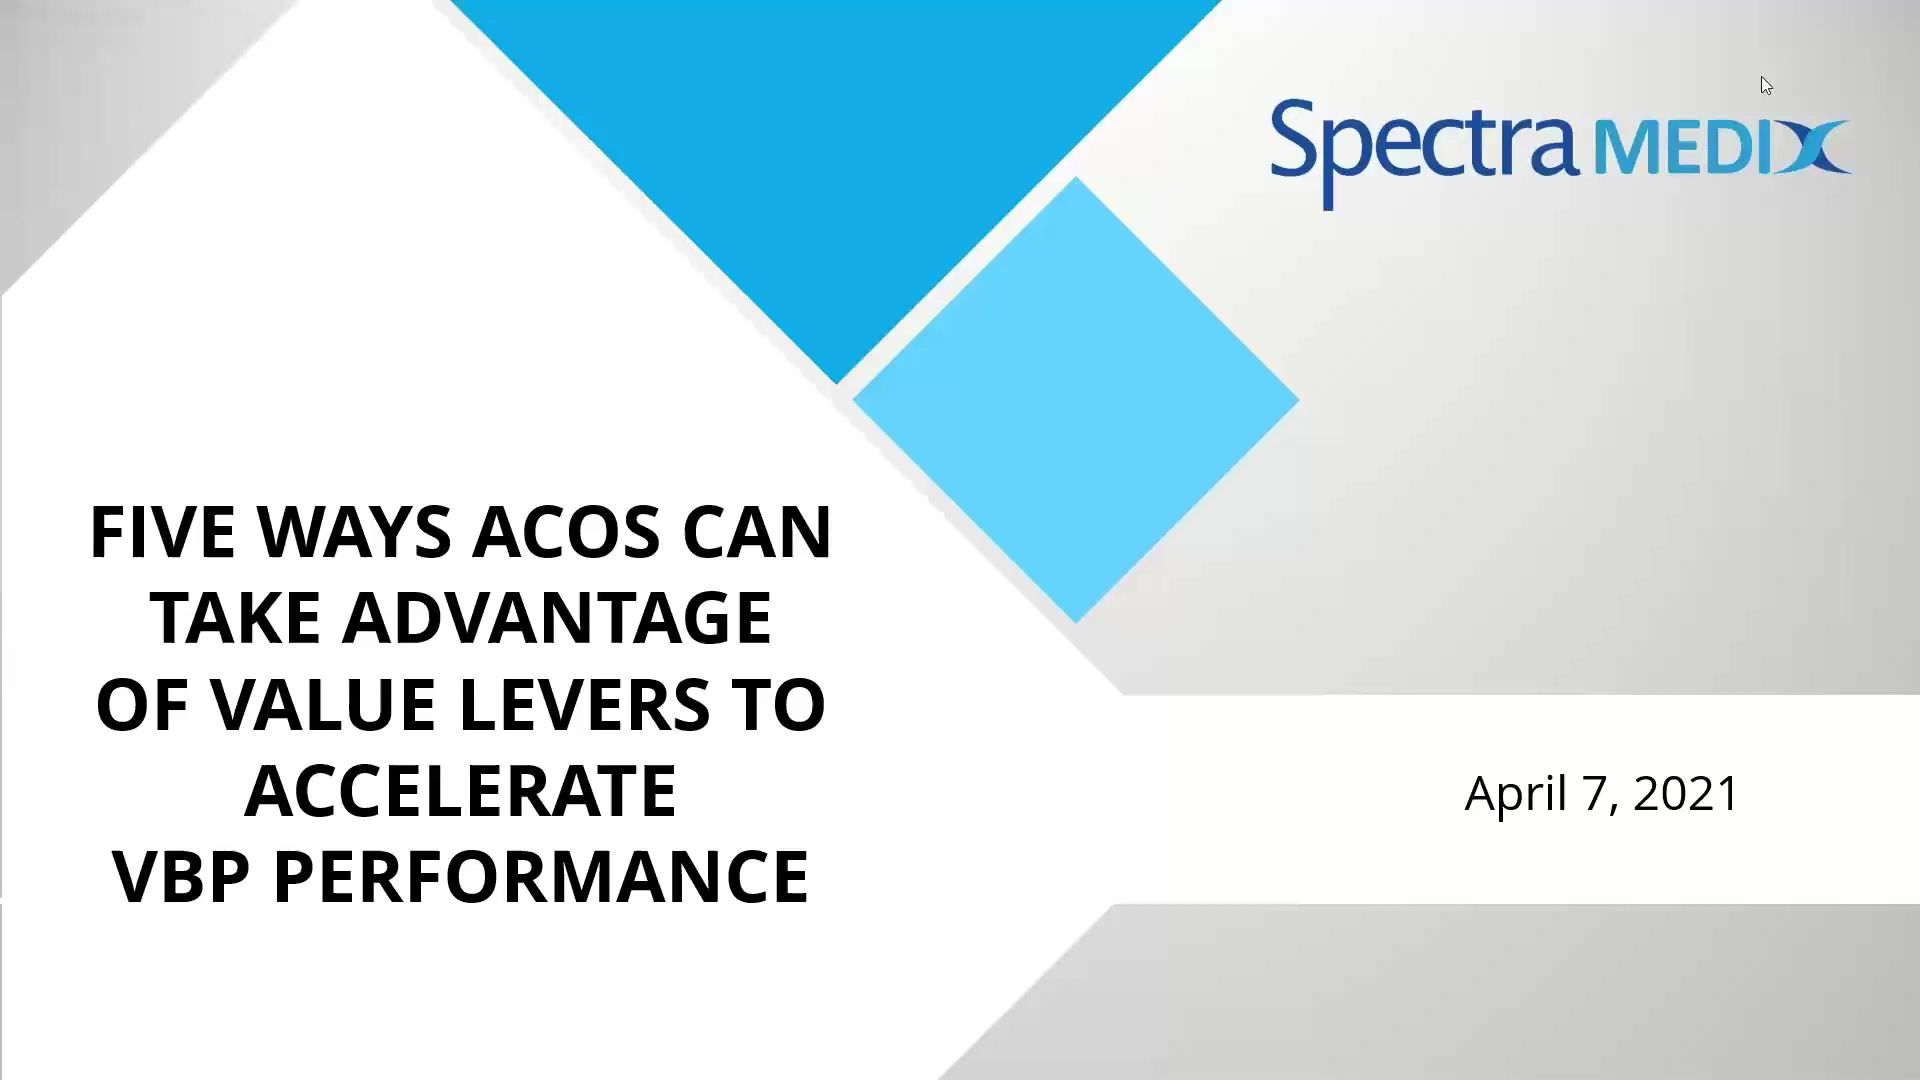 Five Ways ACOs can Take Advantage of Value Levers to Accelerate VBP Performance